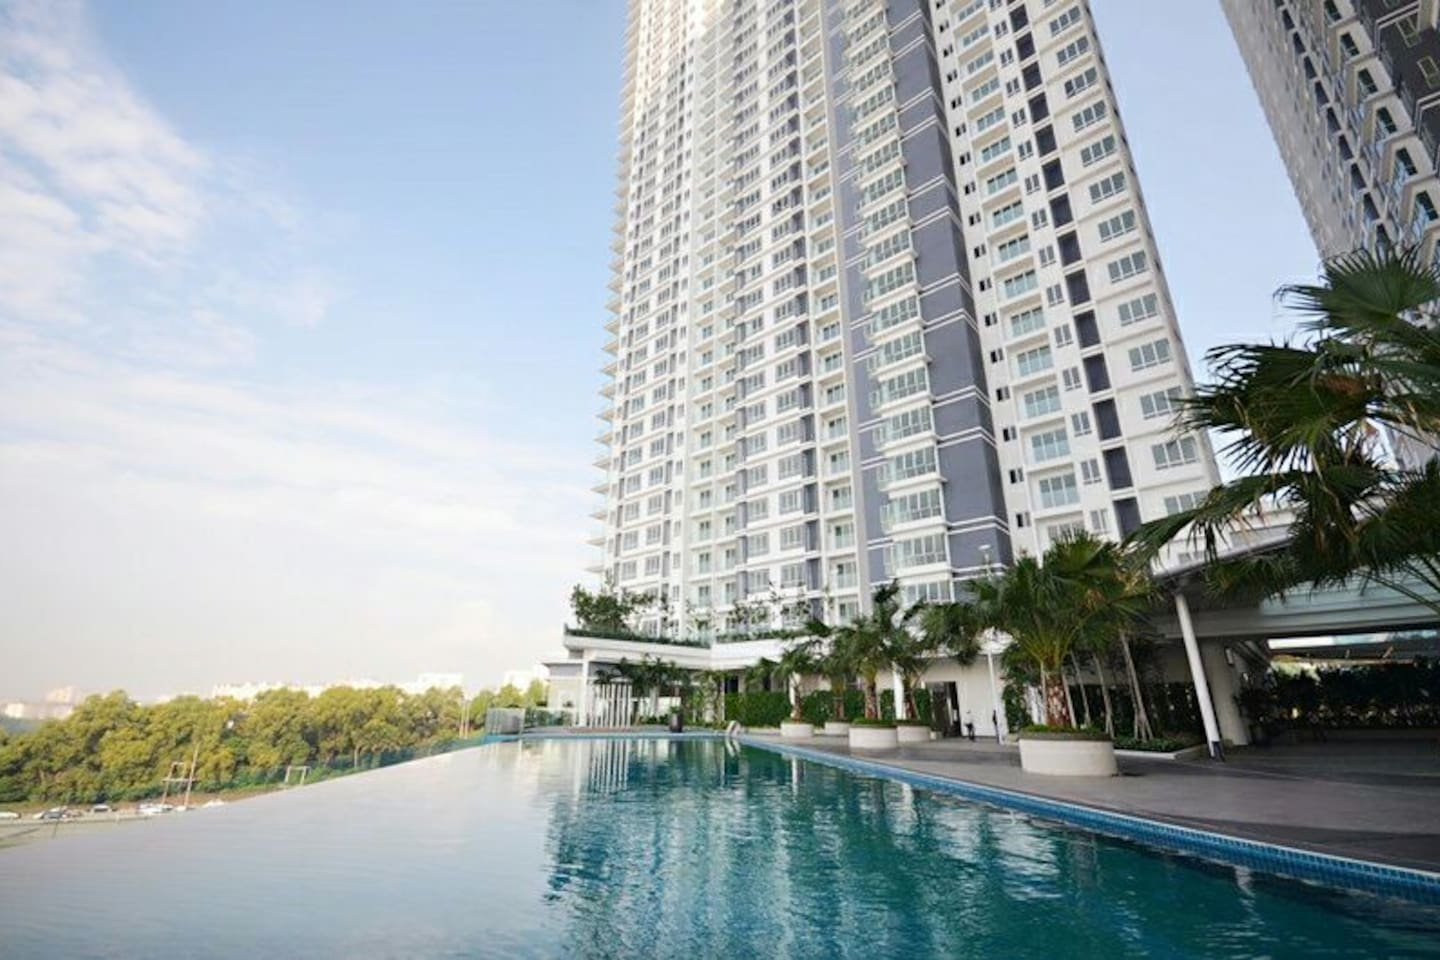 High end service condo 5mins Uber distance to midvelly mall 15mins Uber distance to KLCC&Bukit Bintang Good view swimming pool